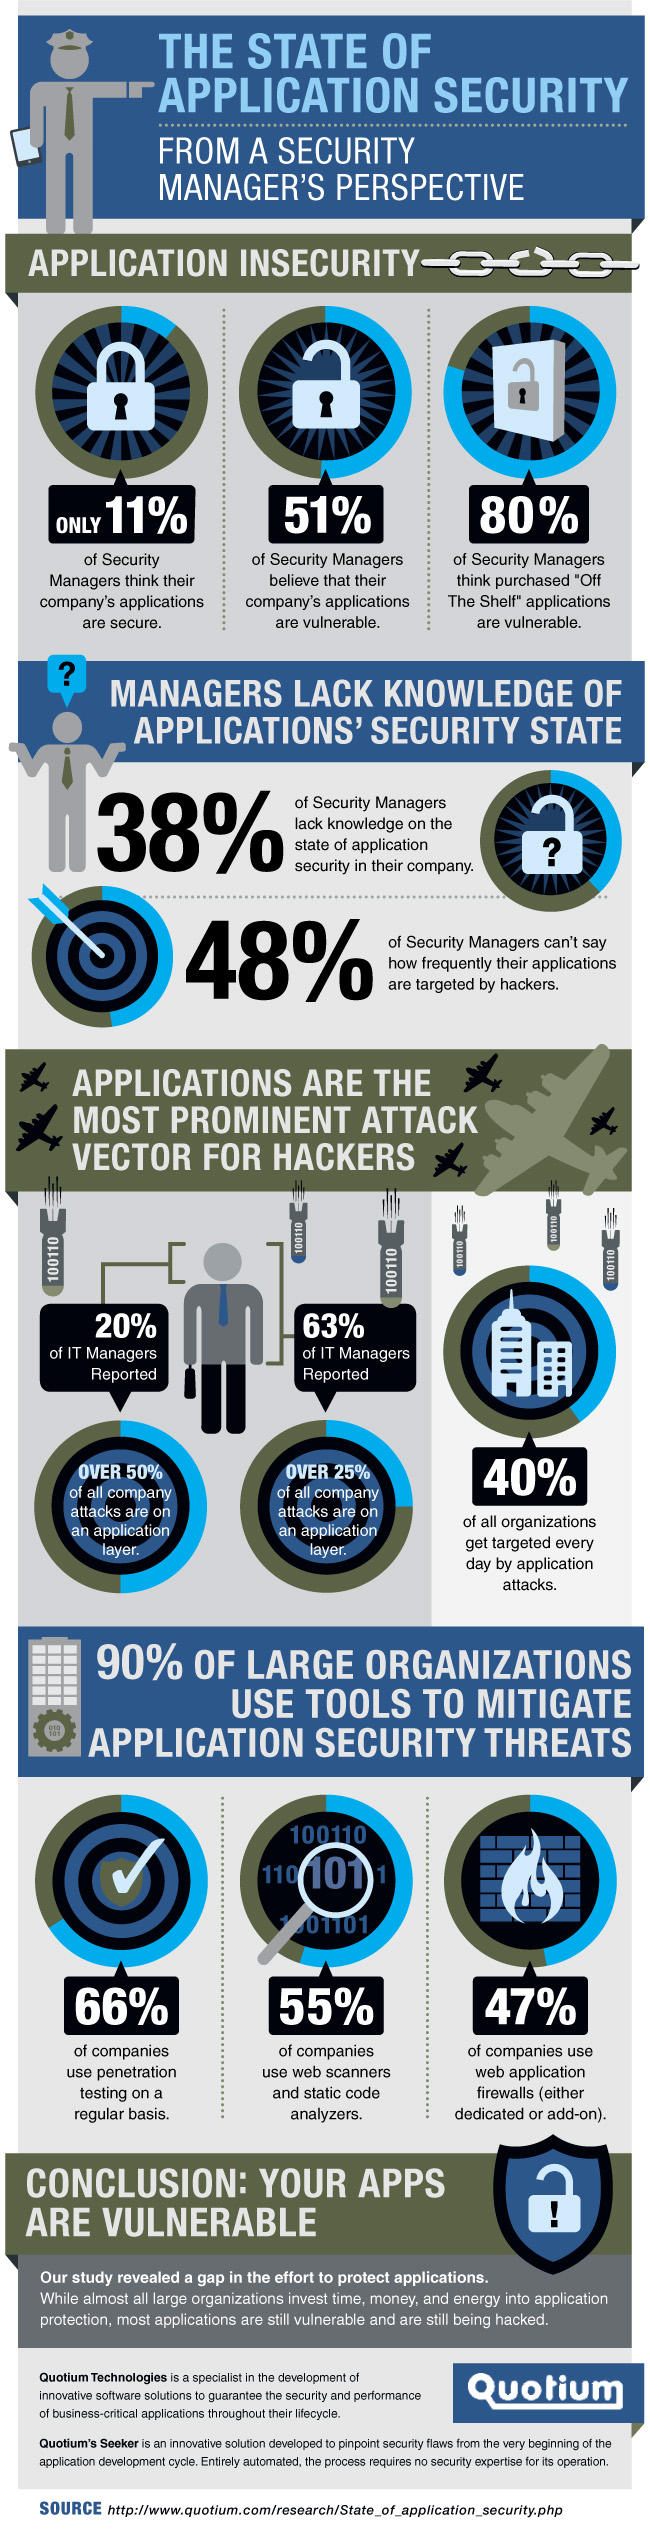 State of Application Security From an IT Manager's Perspective